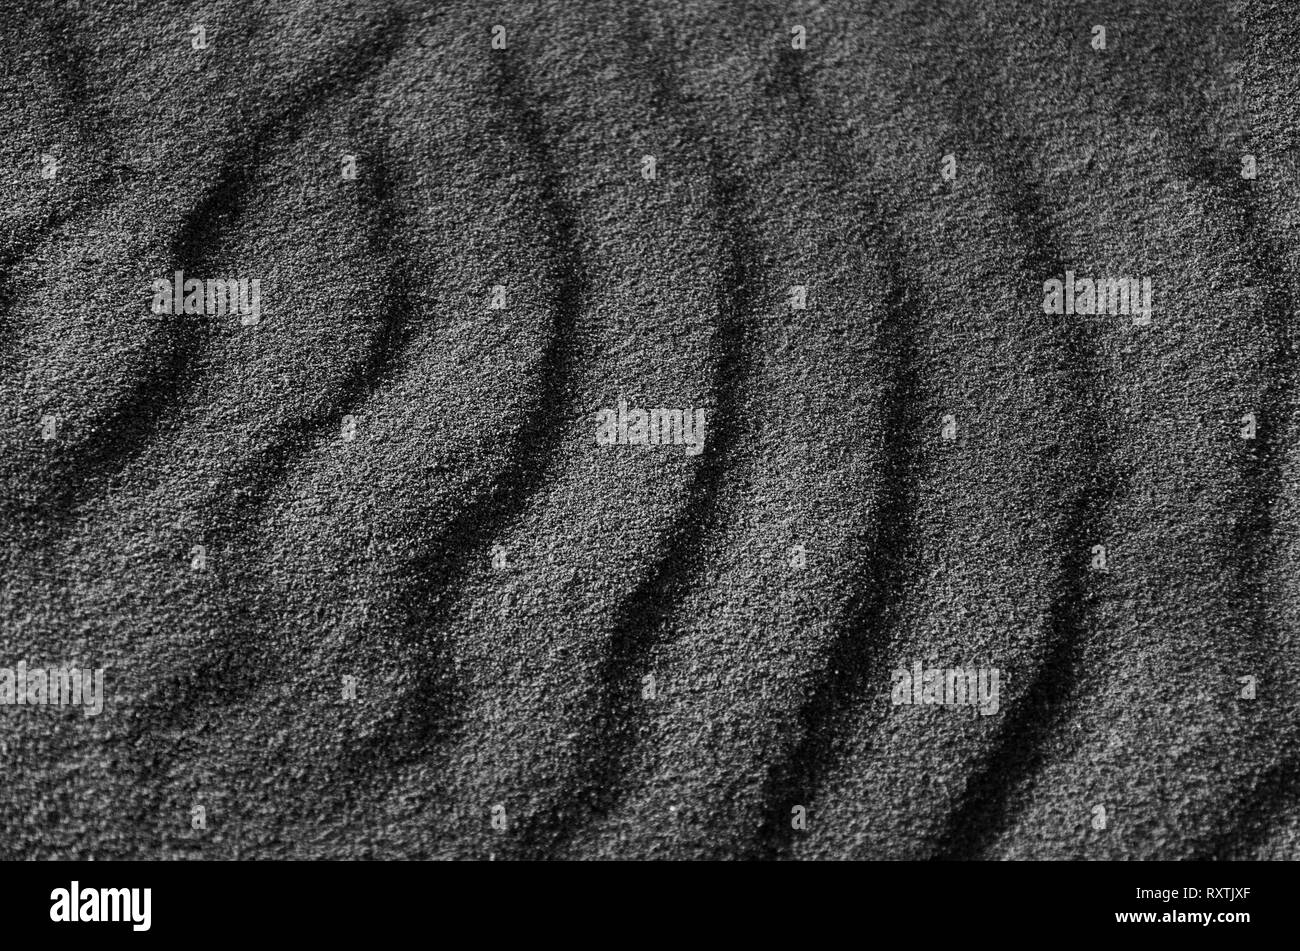 monochromatic photograph of the sand in the sea, abstract gray background, dark lines pattern, grainy texture - Stock Image